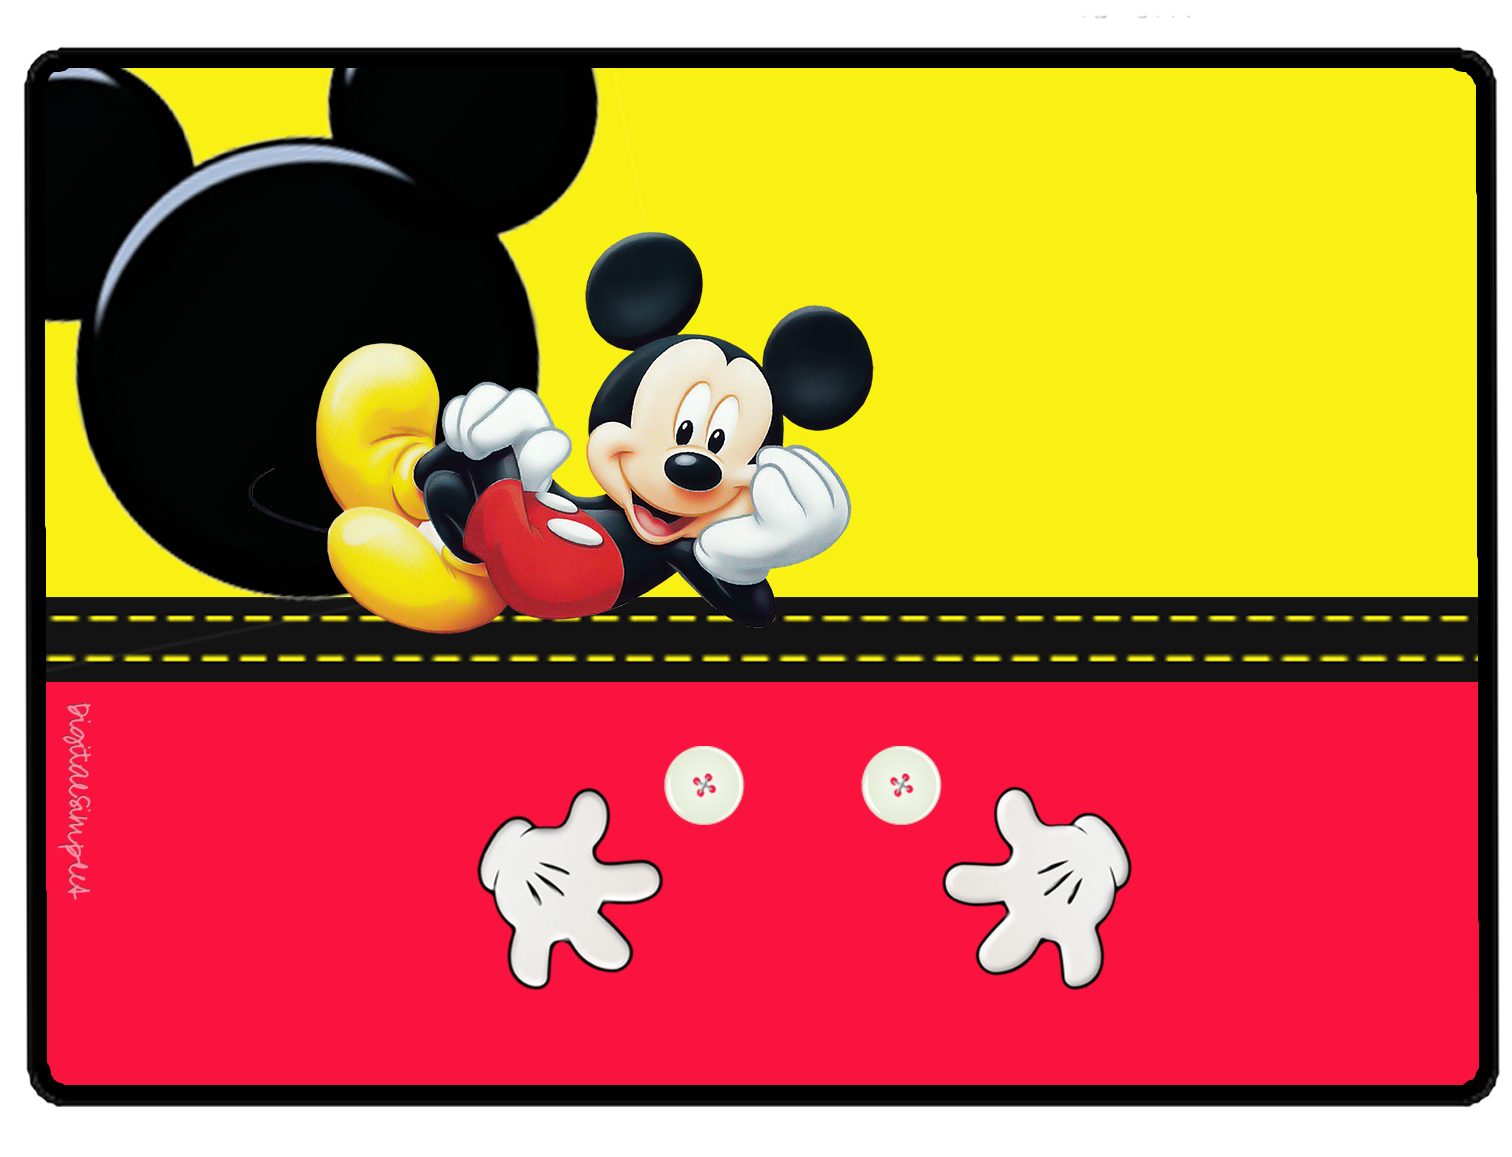 Mickey in yellow and red free printable party kit is it for parties